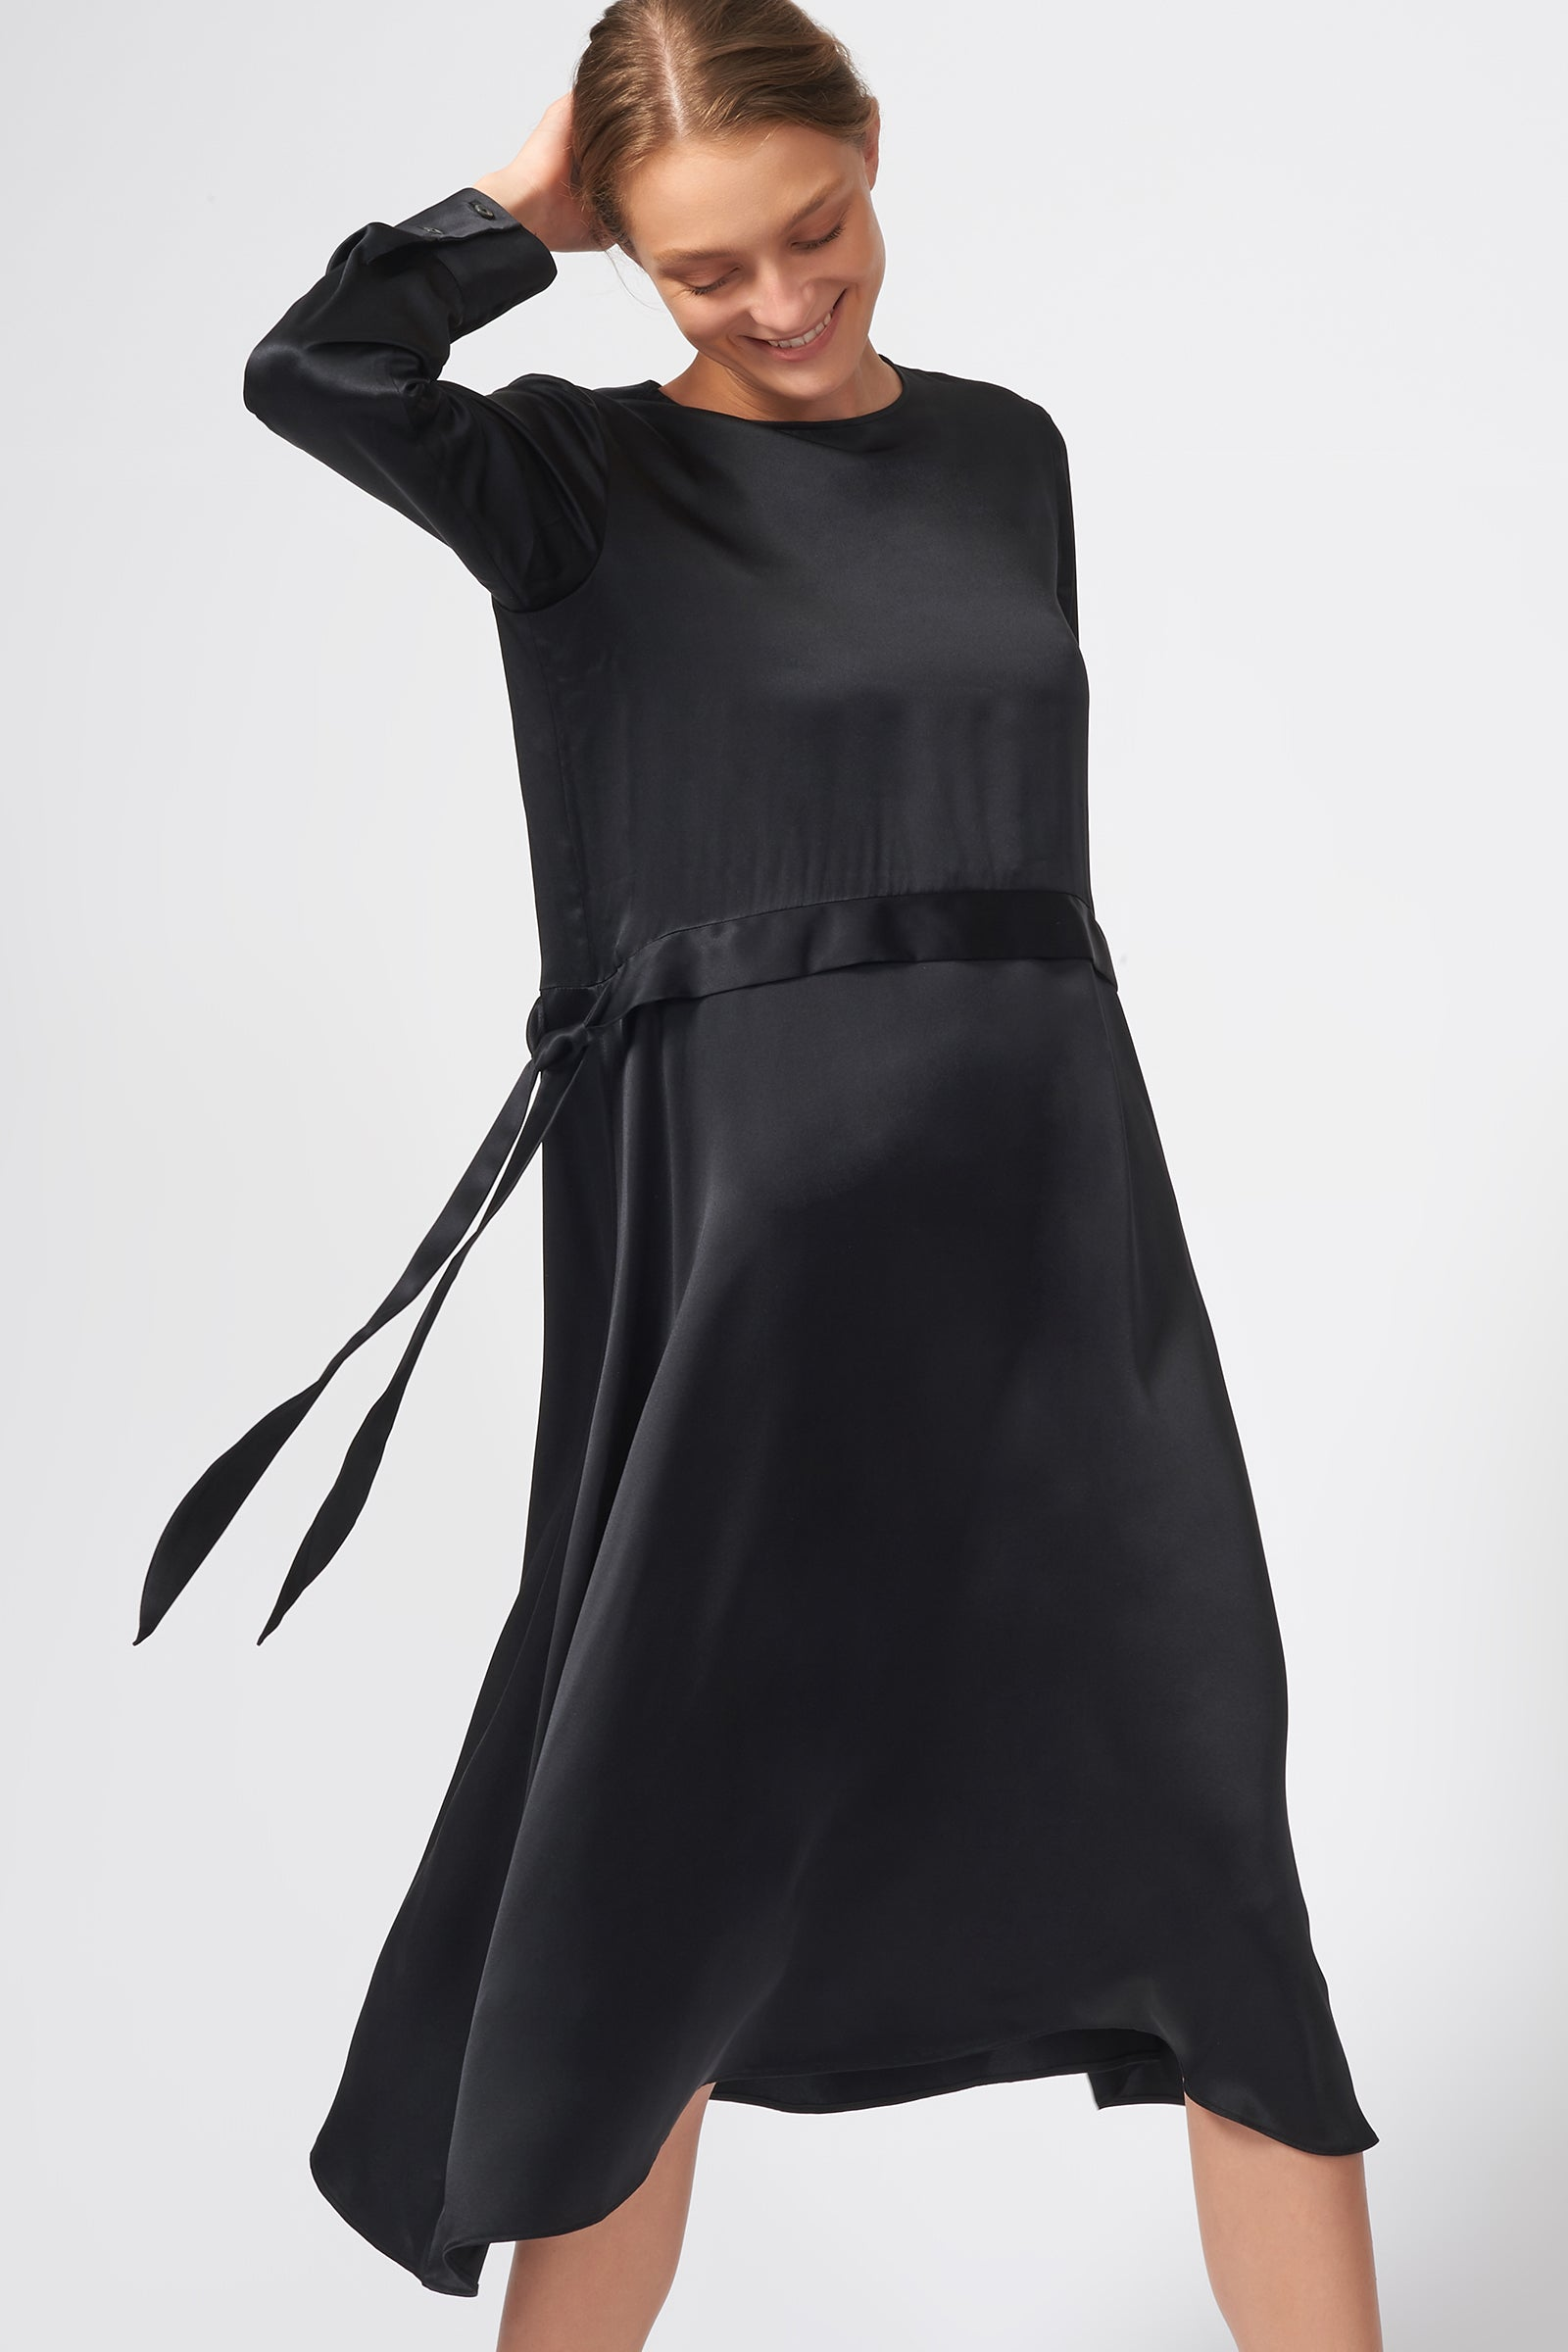 Kal Rieman Side Tie Midi Dress in Black on Model Front Detail View